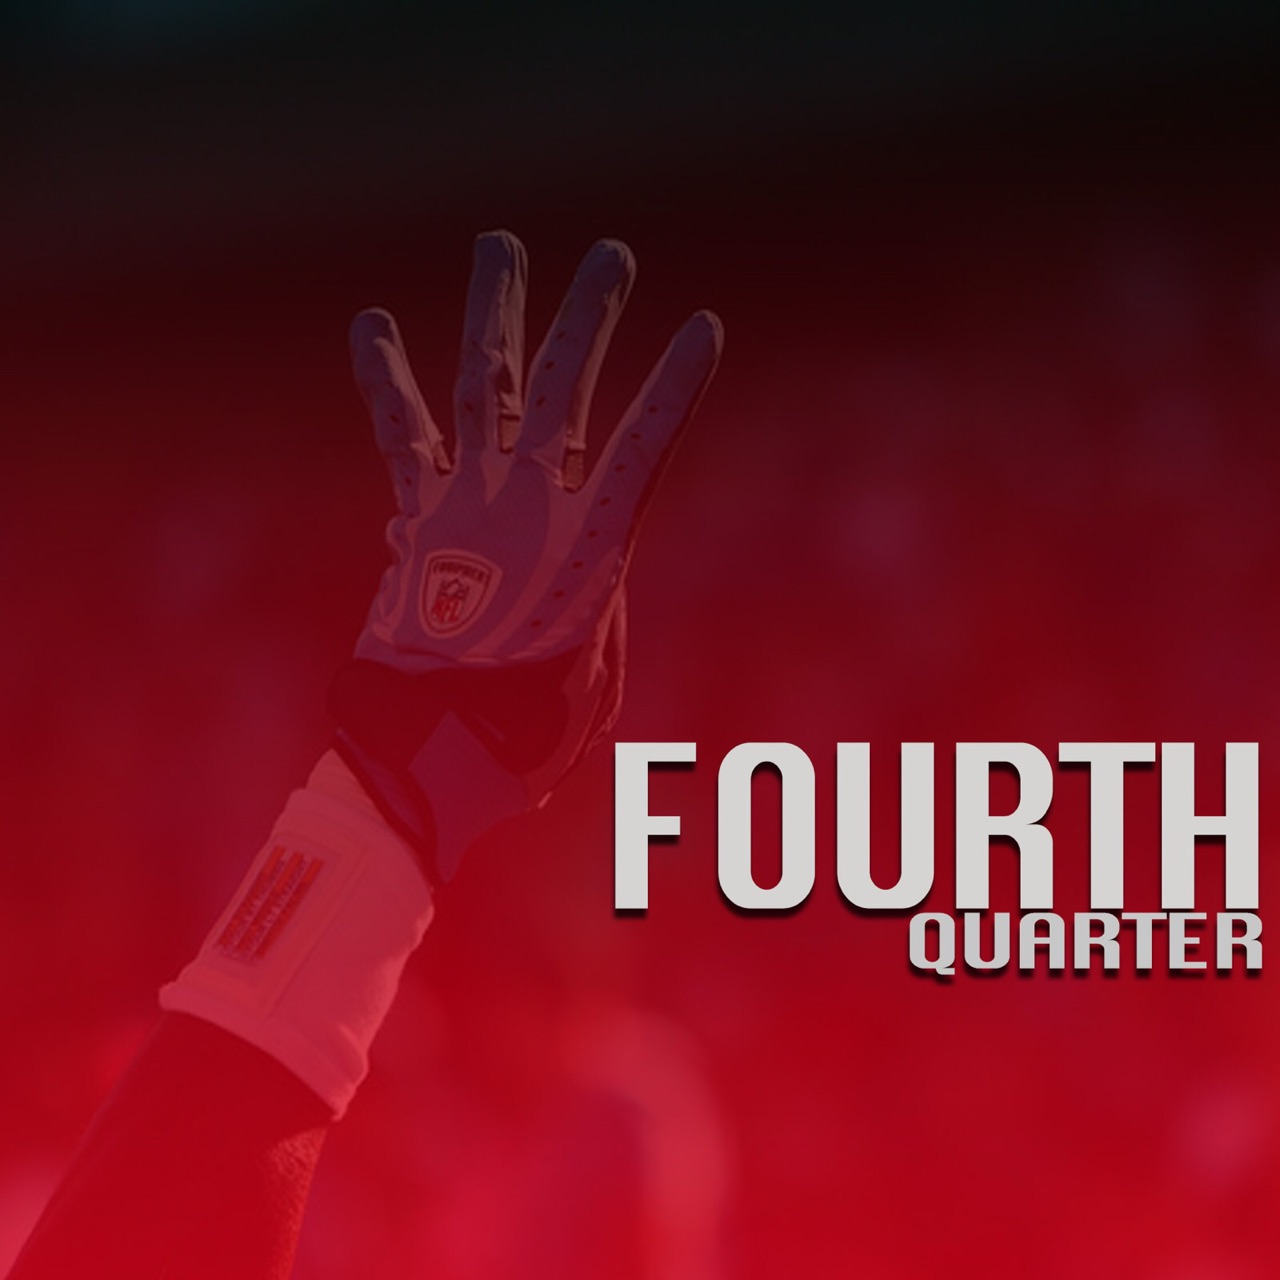 WE ARE IN THE FOURTH QUARTER-1.jpeg